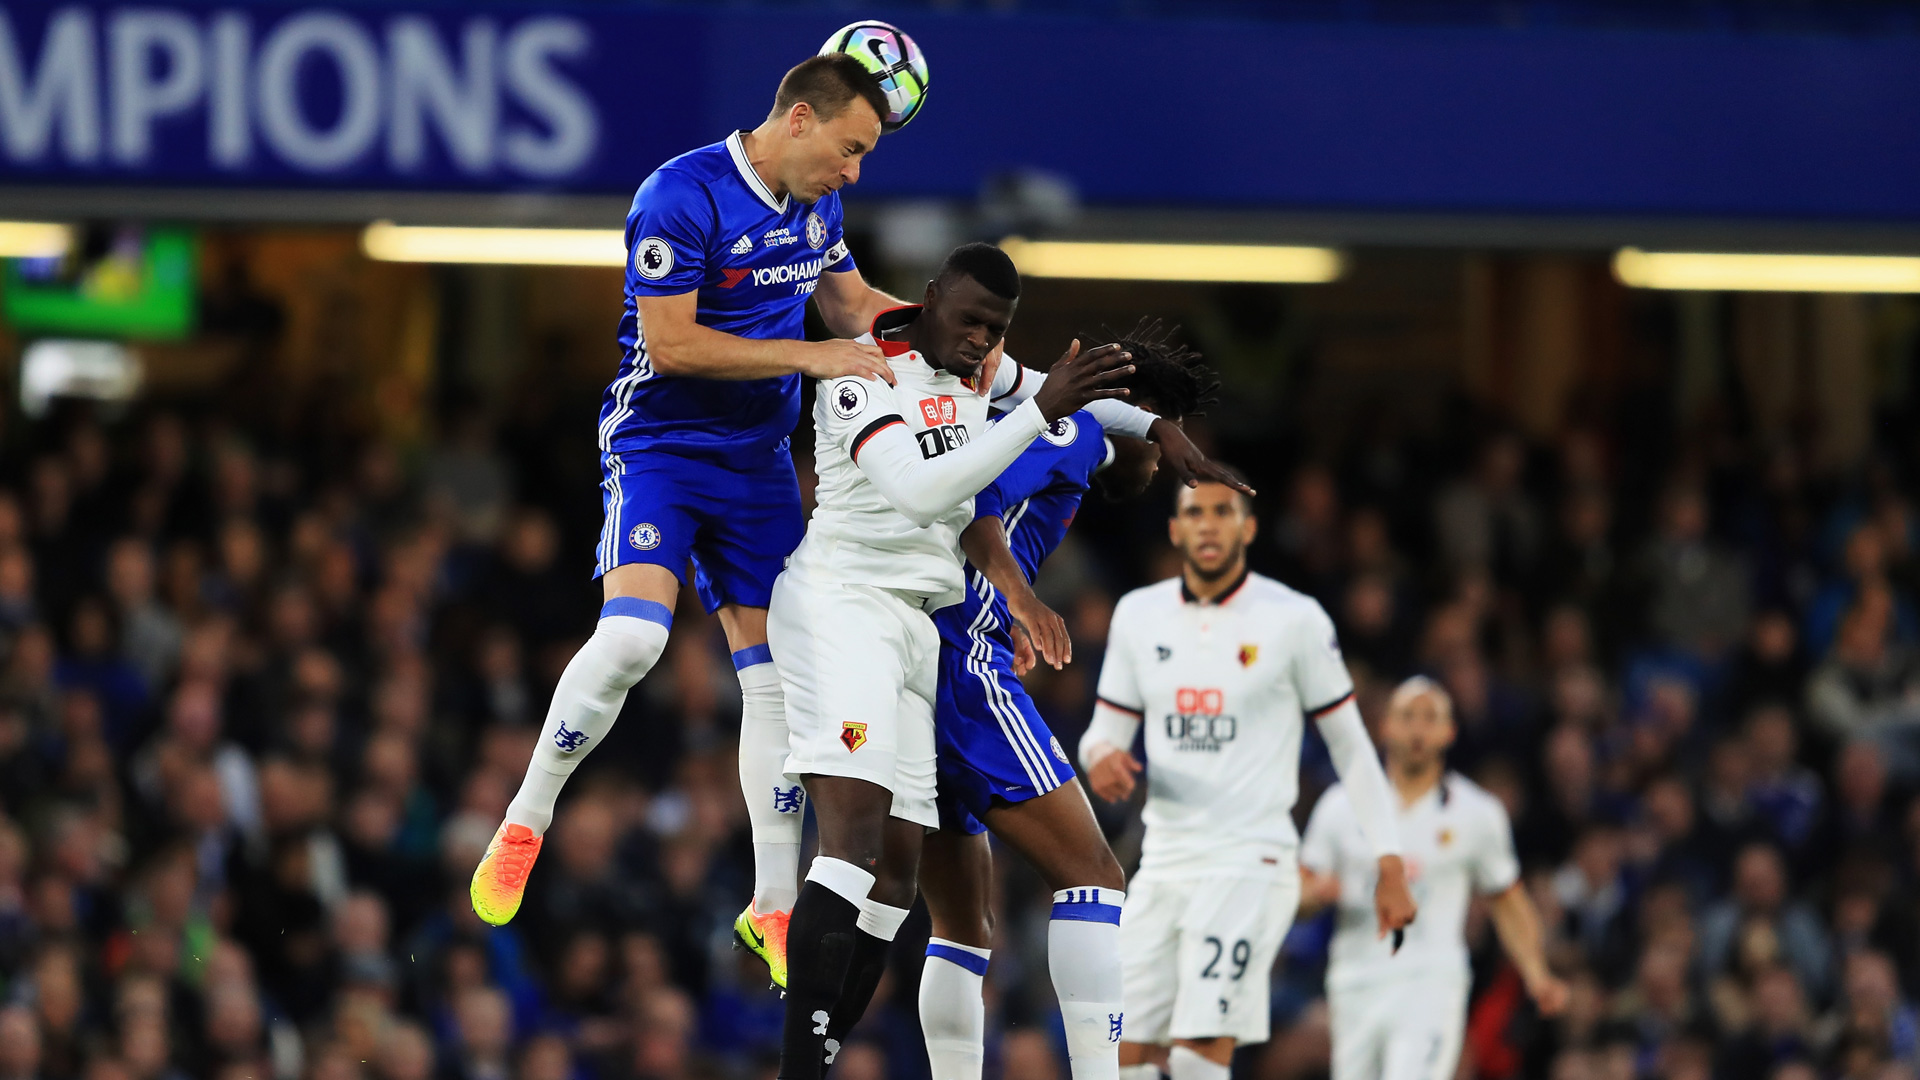 Premier League: festa Chelsea a Stamford Bridge, poker al Watford